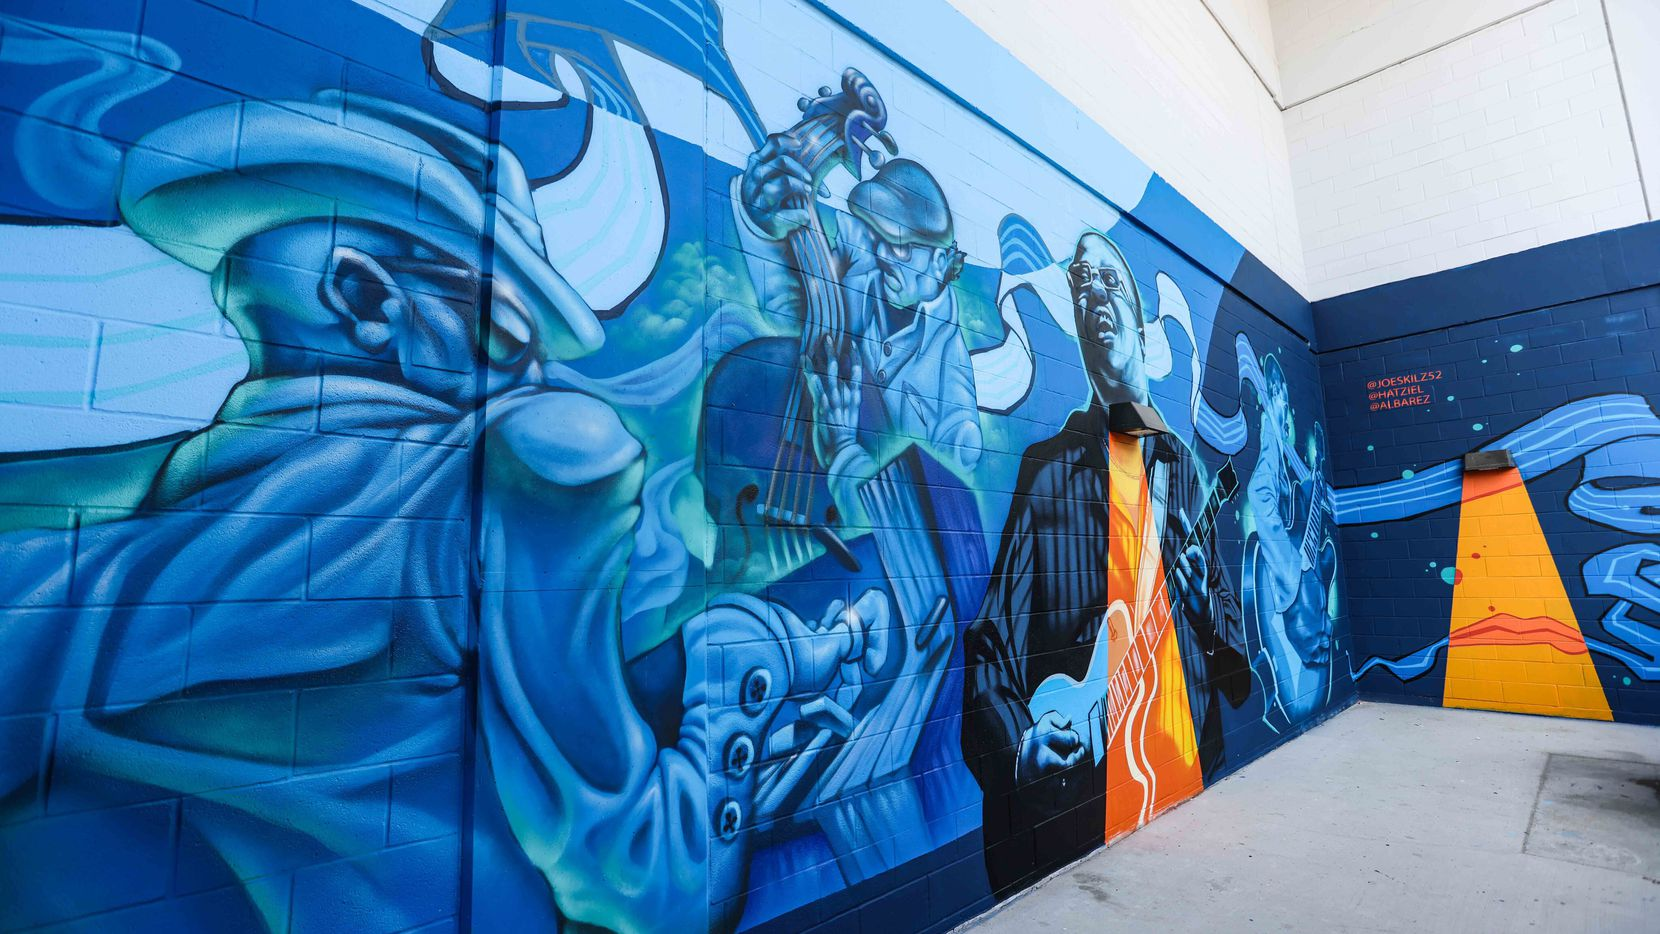 Ten 16-foot-high murals color the back of The Stack building in Deep Ellum as part of Blues Alley.